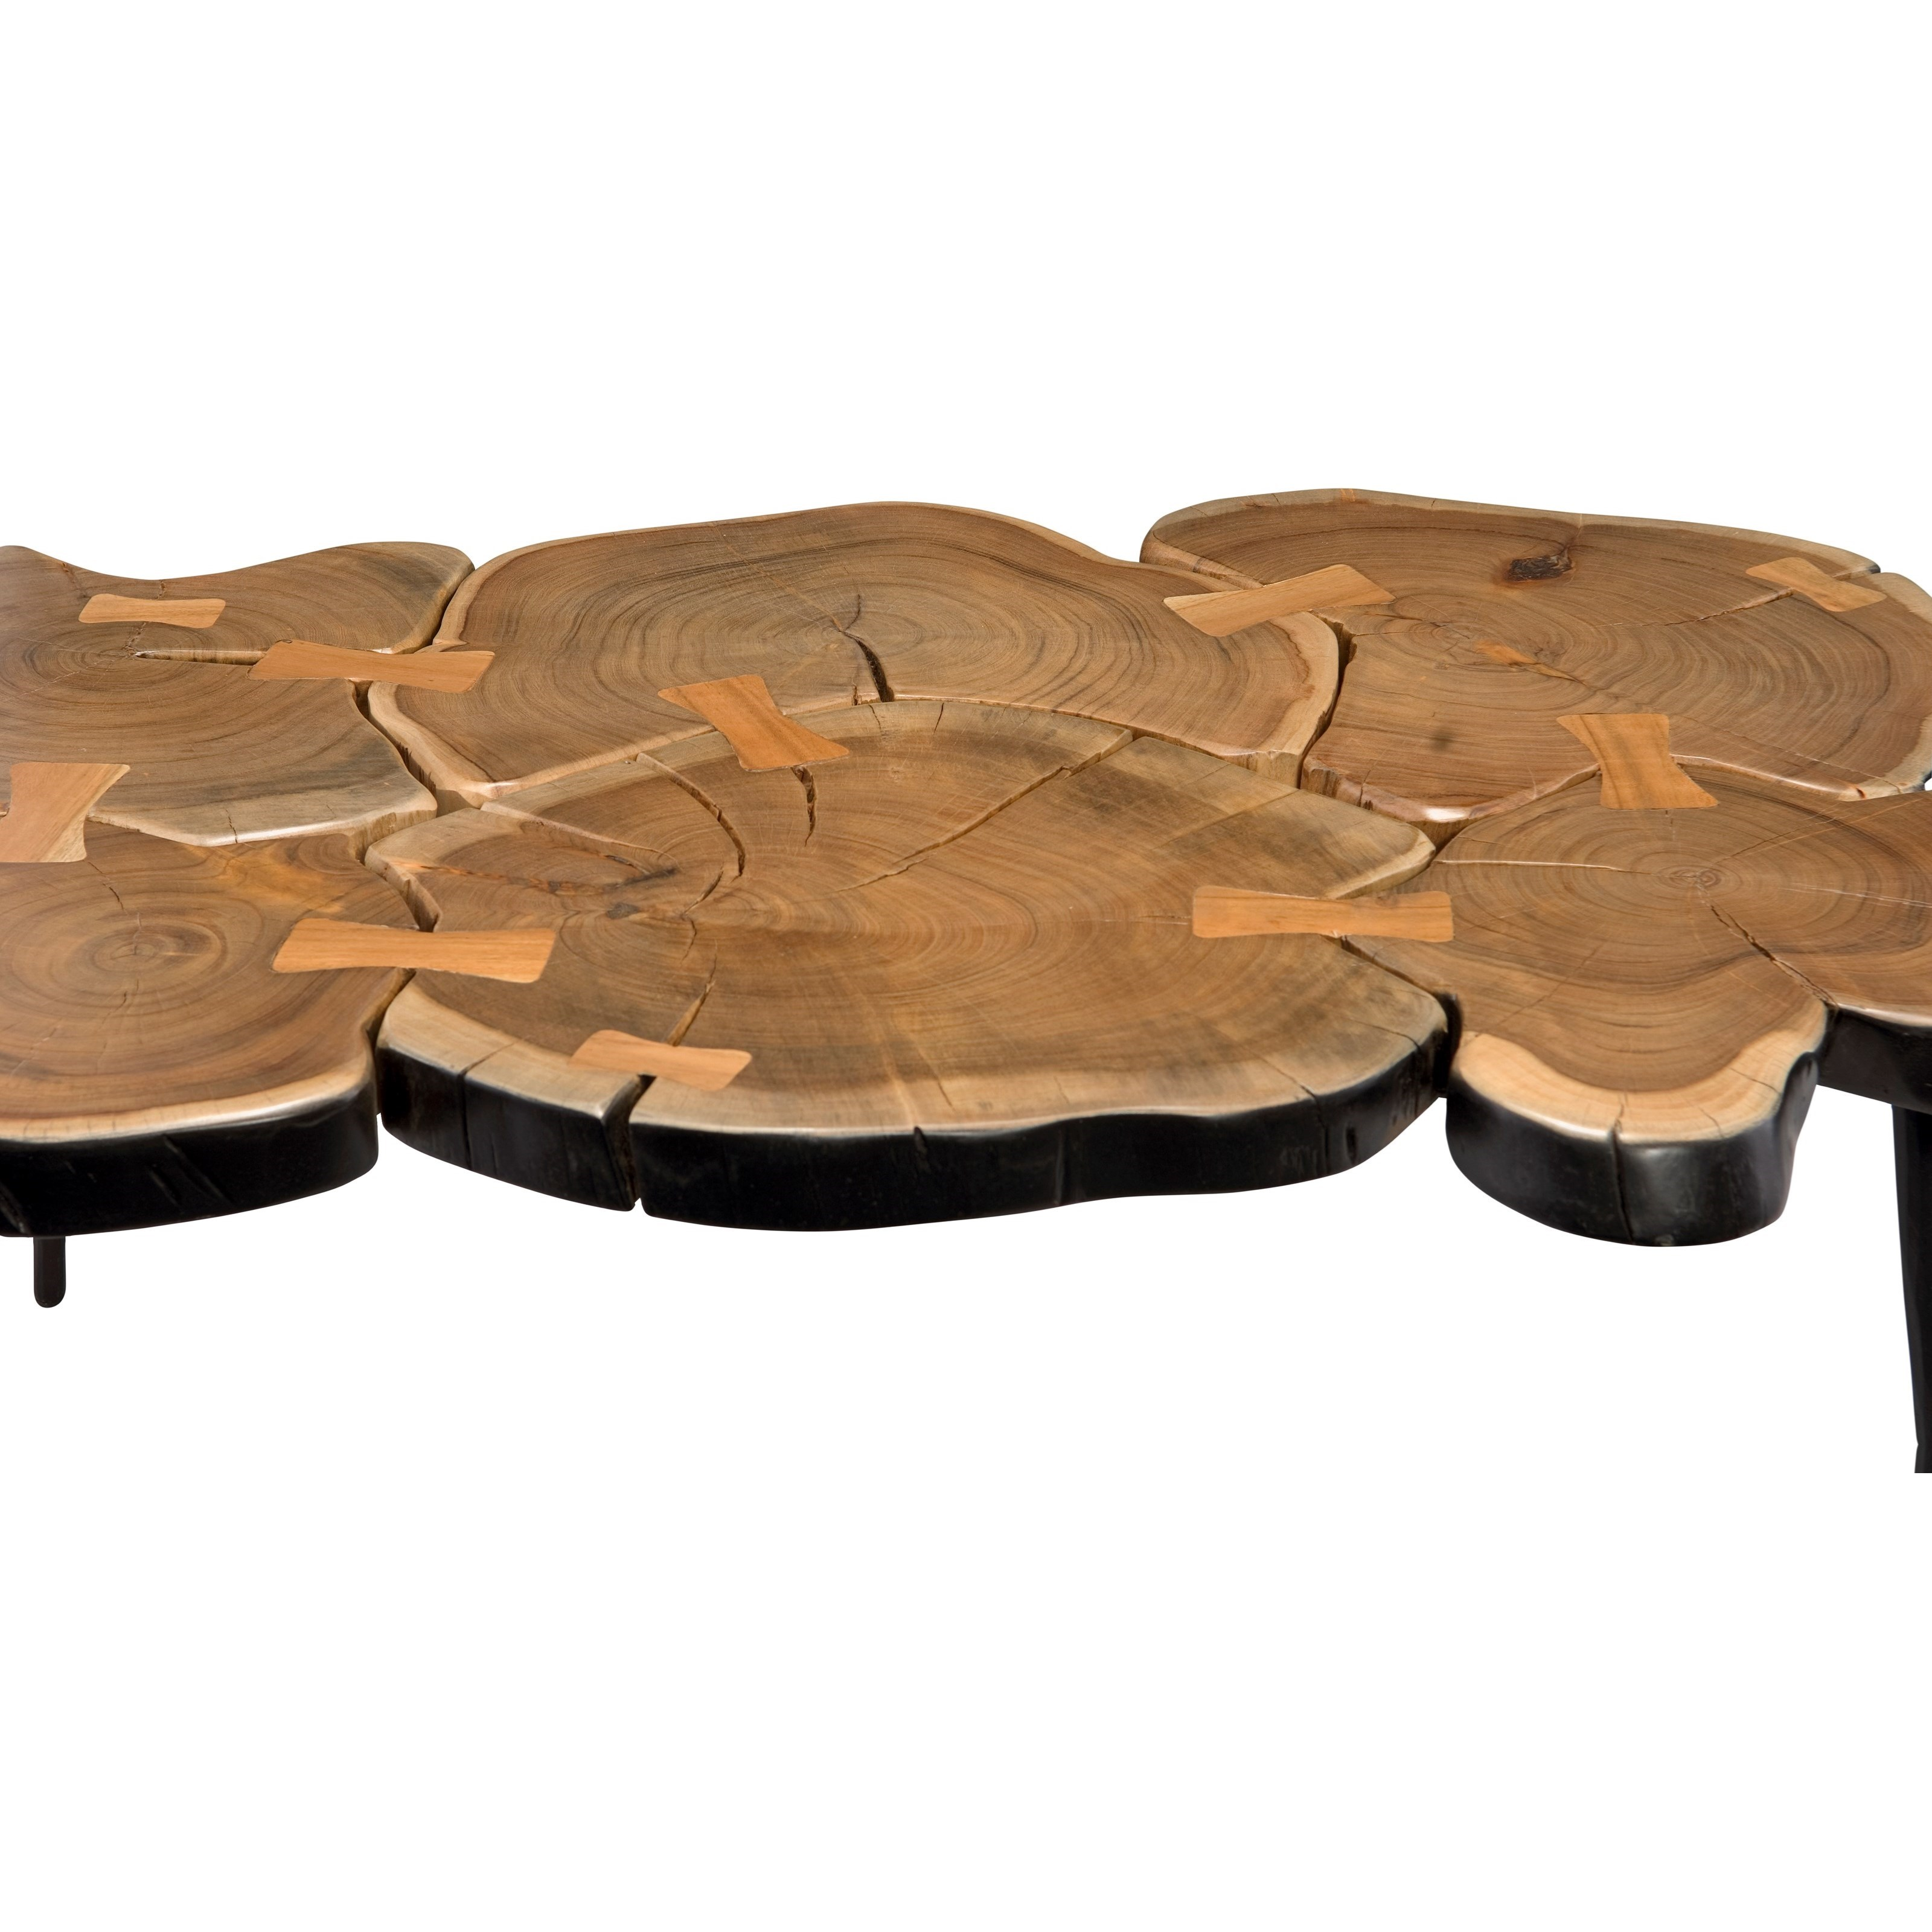 Sliced Log Coffee Table Rustic Sliced Wood Coffee Table By Moes Home Collection Wolf